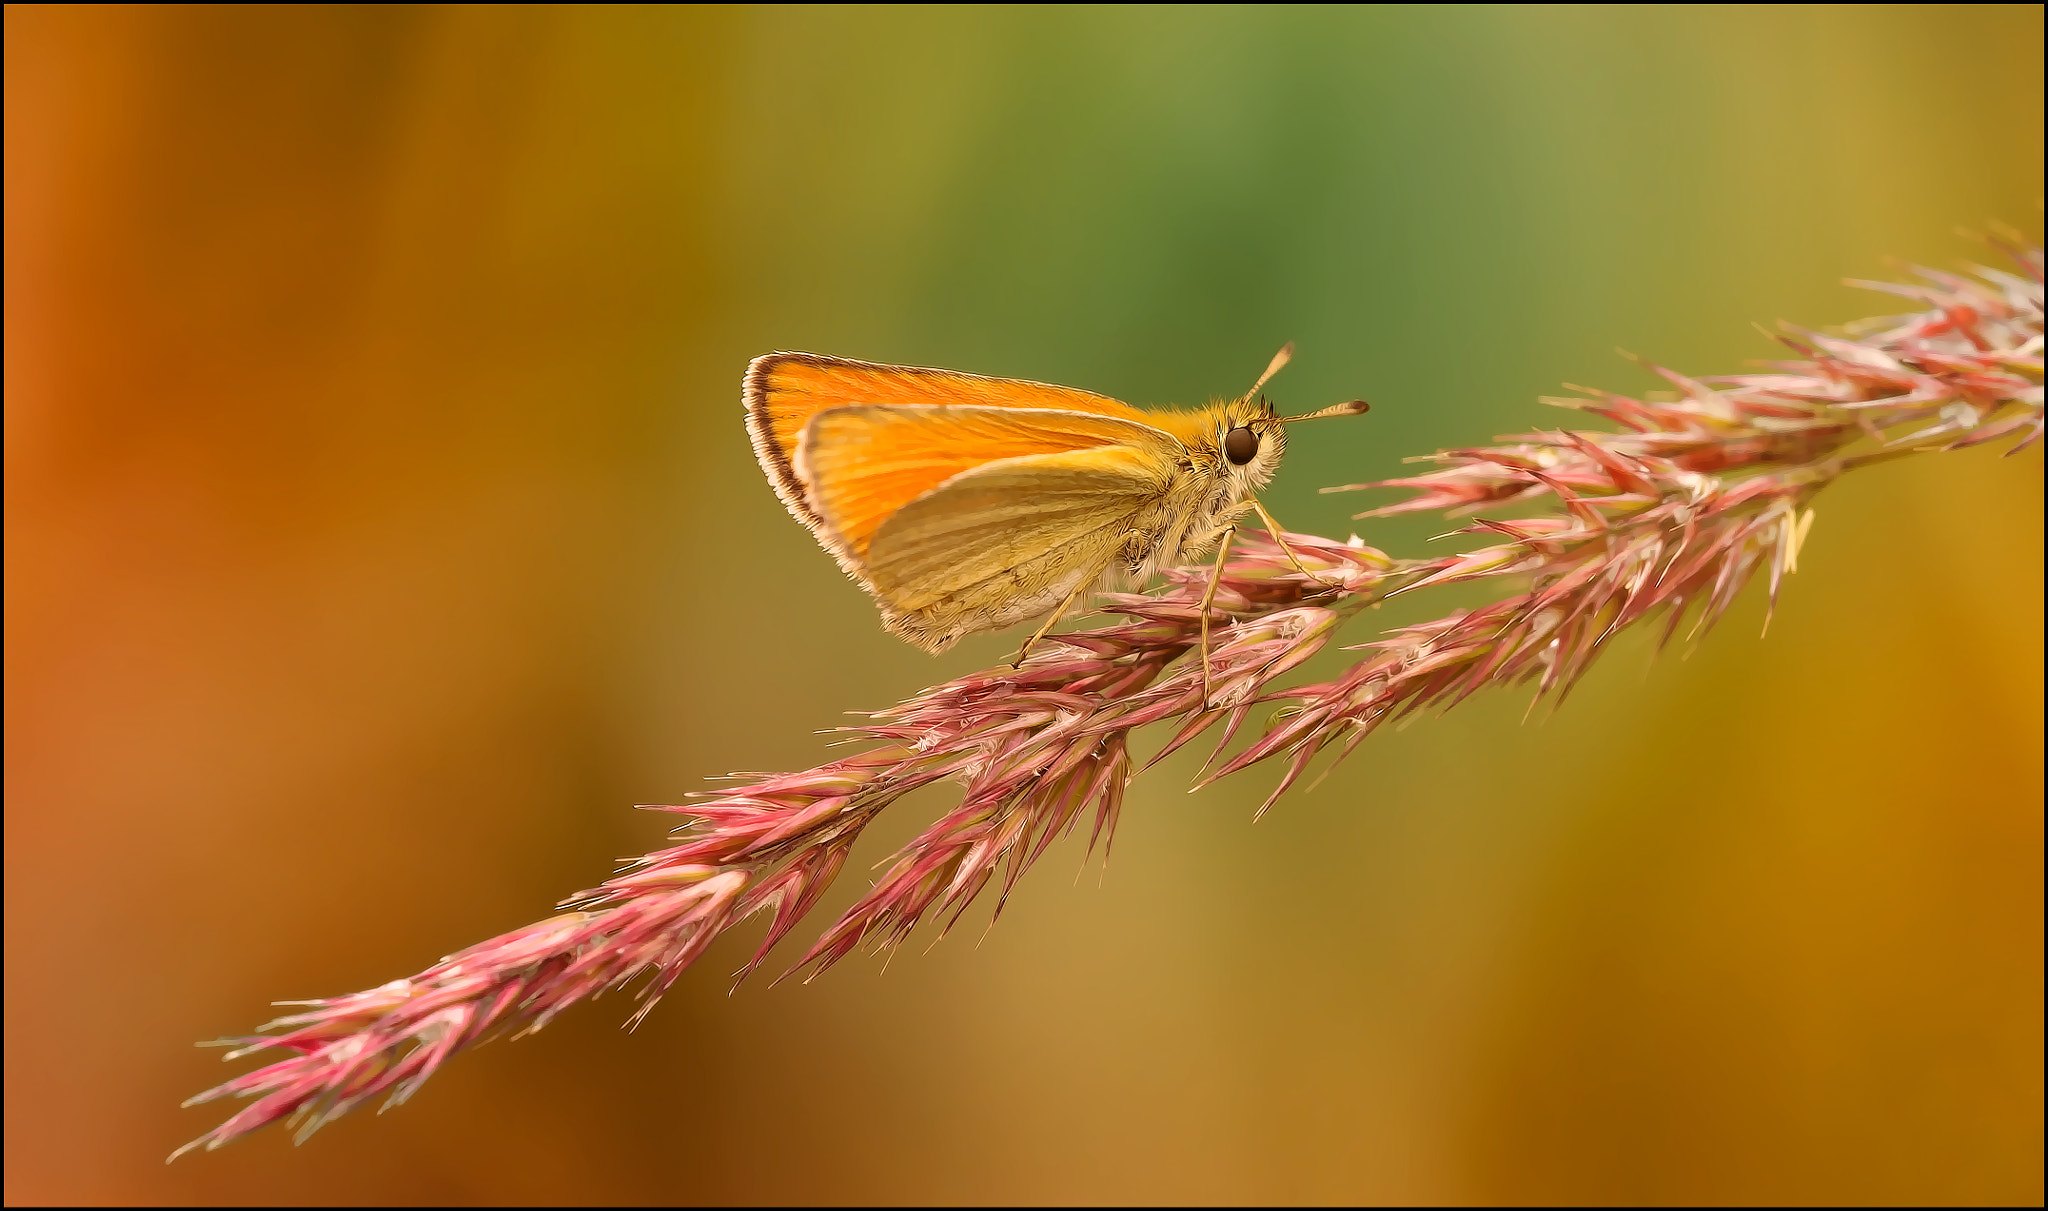 Photograph small butterfly by Sonja Probst on 500px